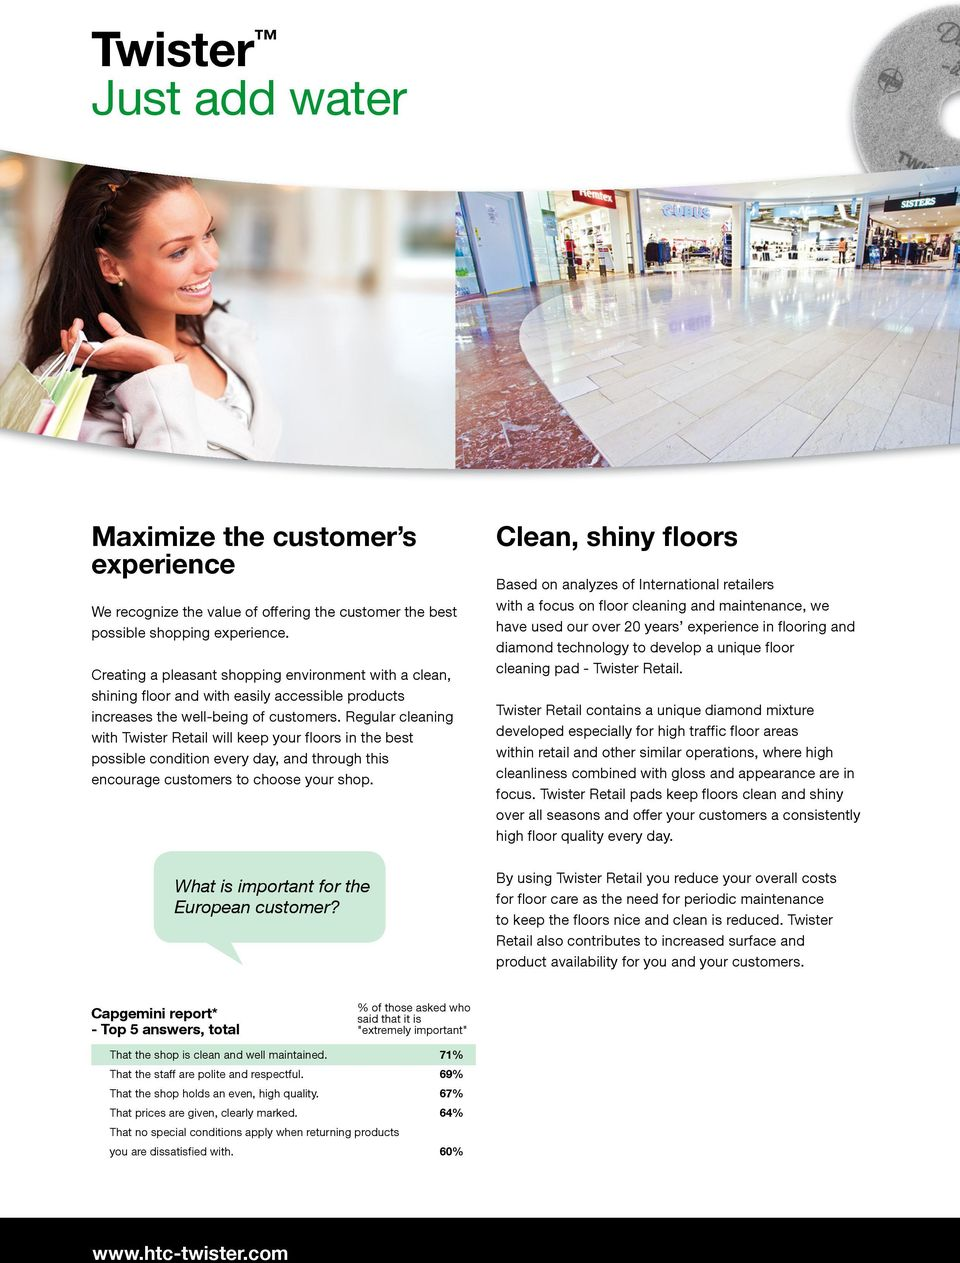 Regular cleaning with Twister Retail will keep your floors in the best possible condition every day, and through this encourage customers to choose your shop.